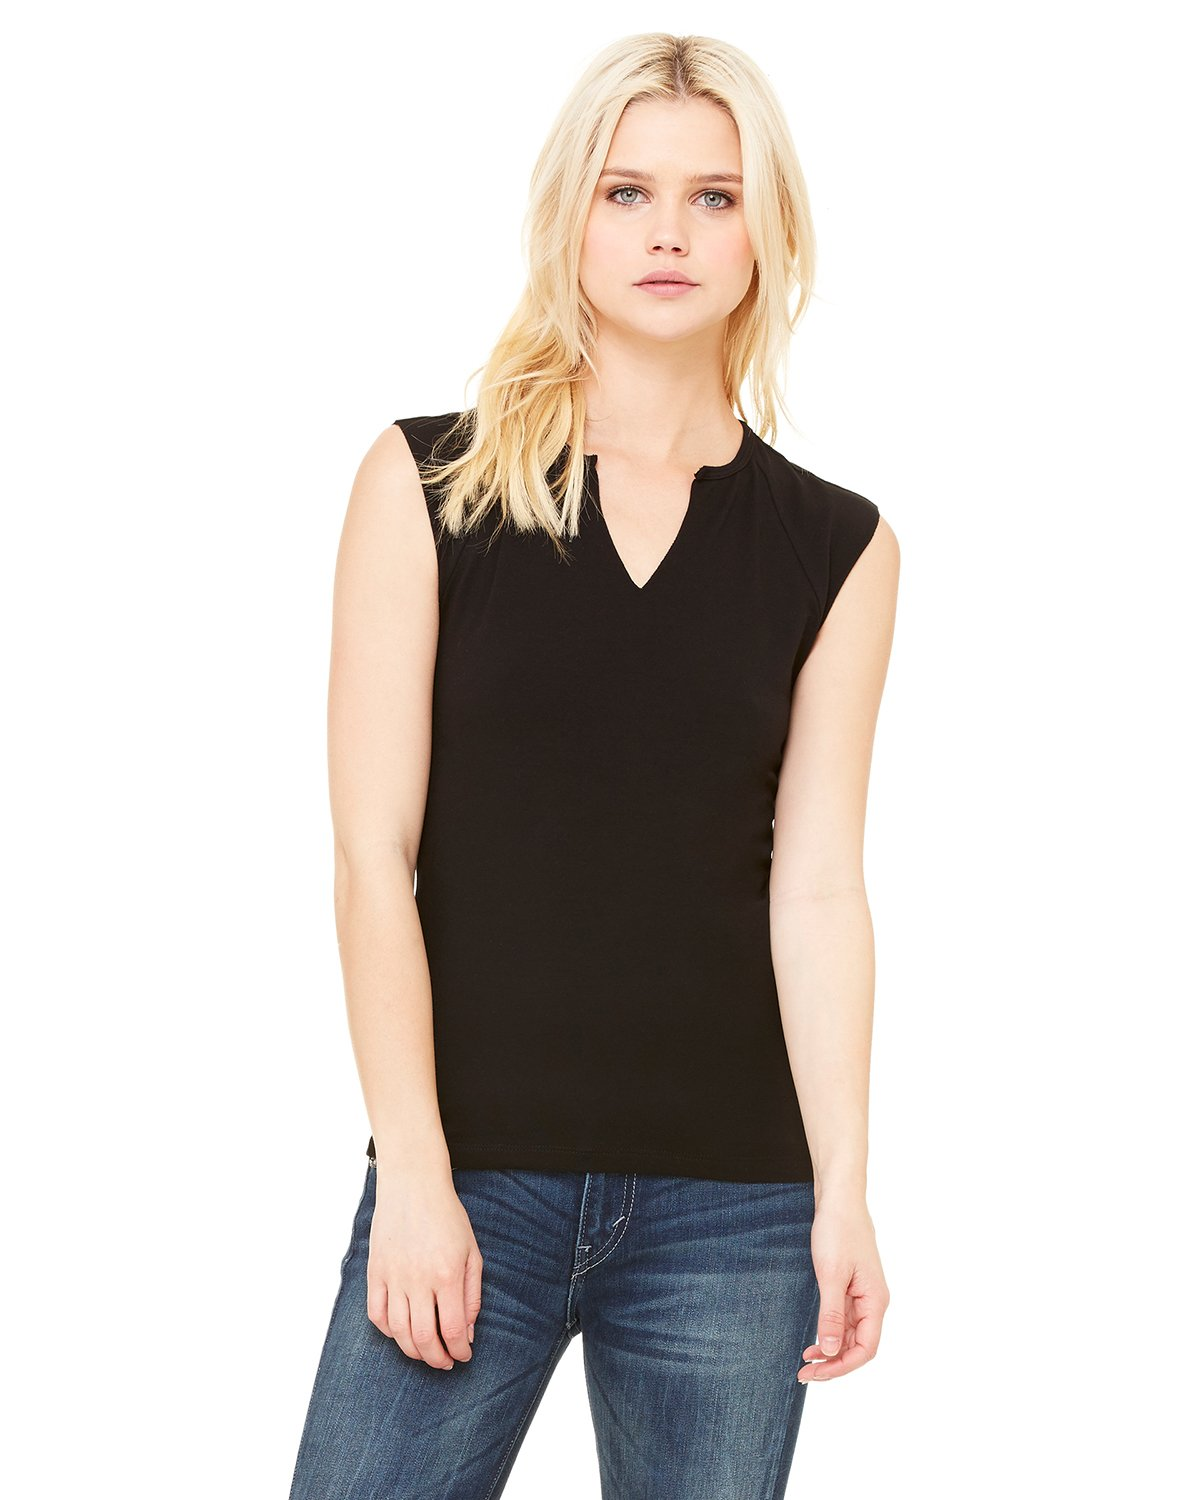 Bella + Canvas - B820 - Ladies' Cotton/Spandex Slit-V Raglan T-Shirt